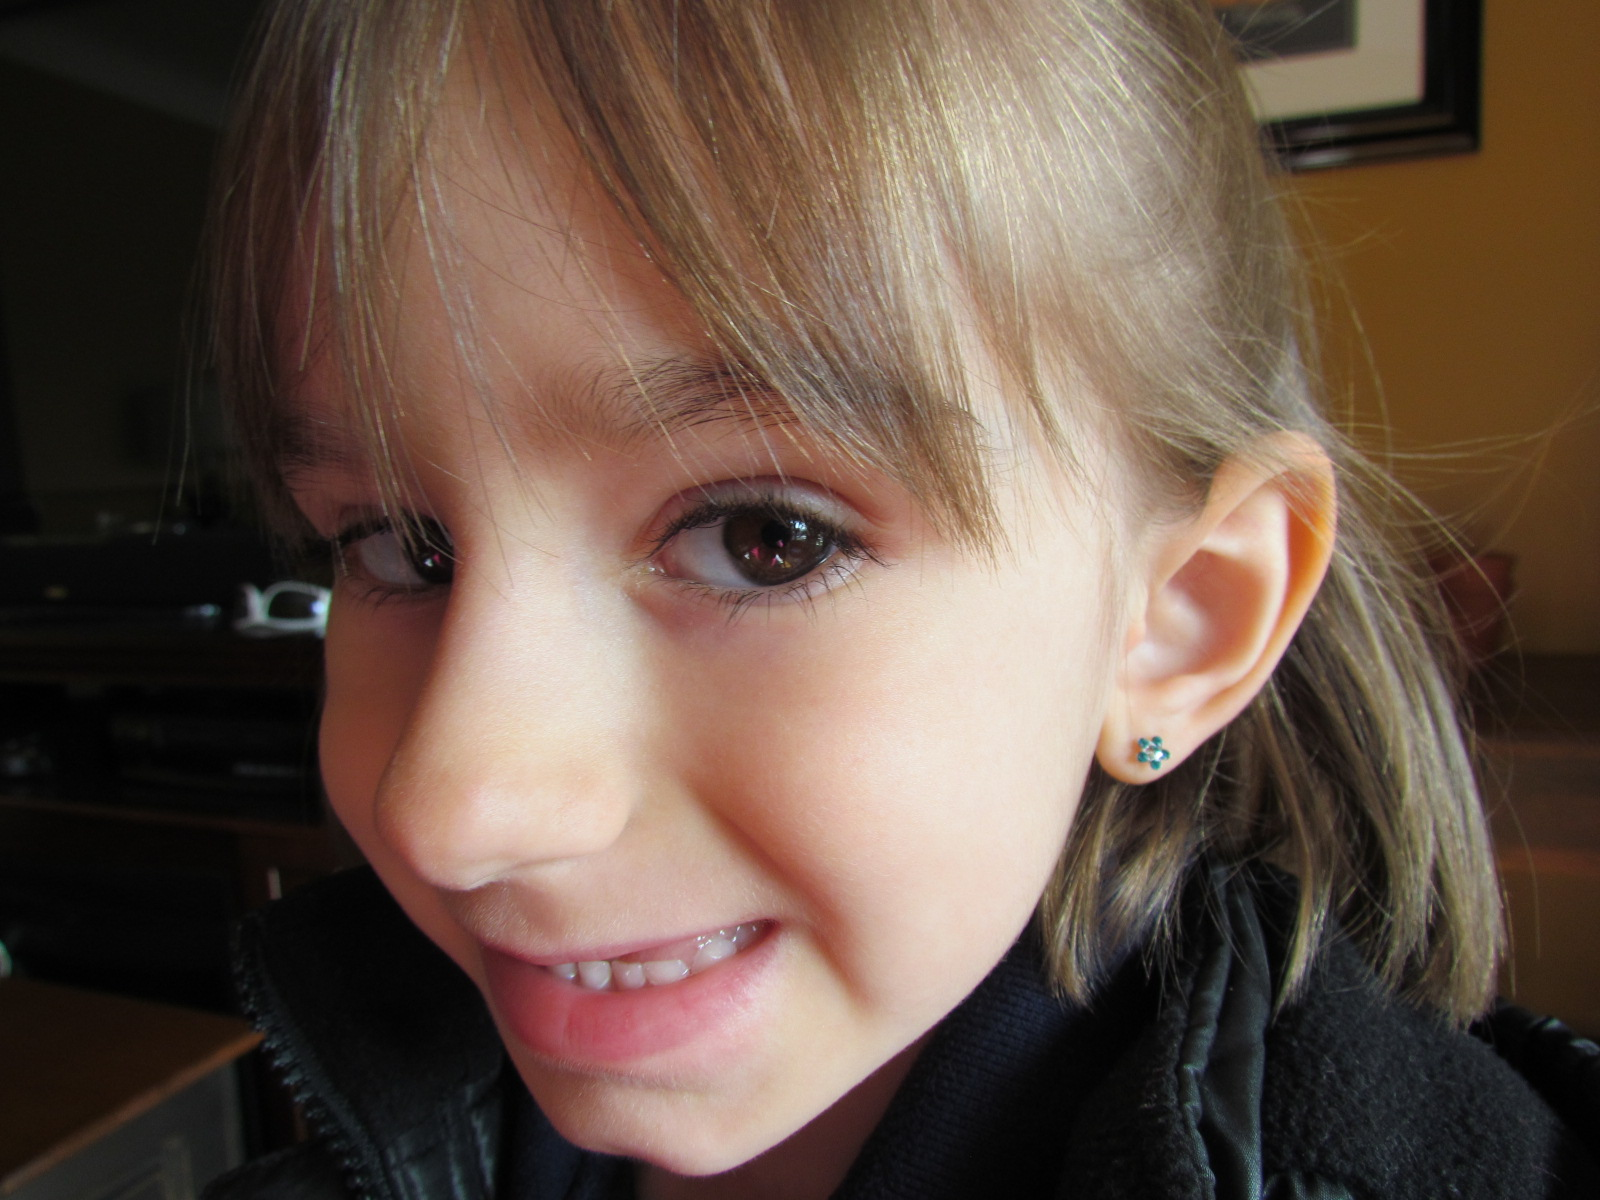 To pierce or not to pierce…..that is the question.